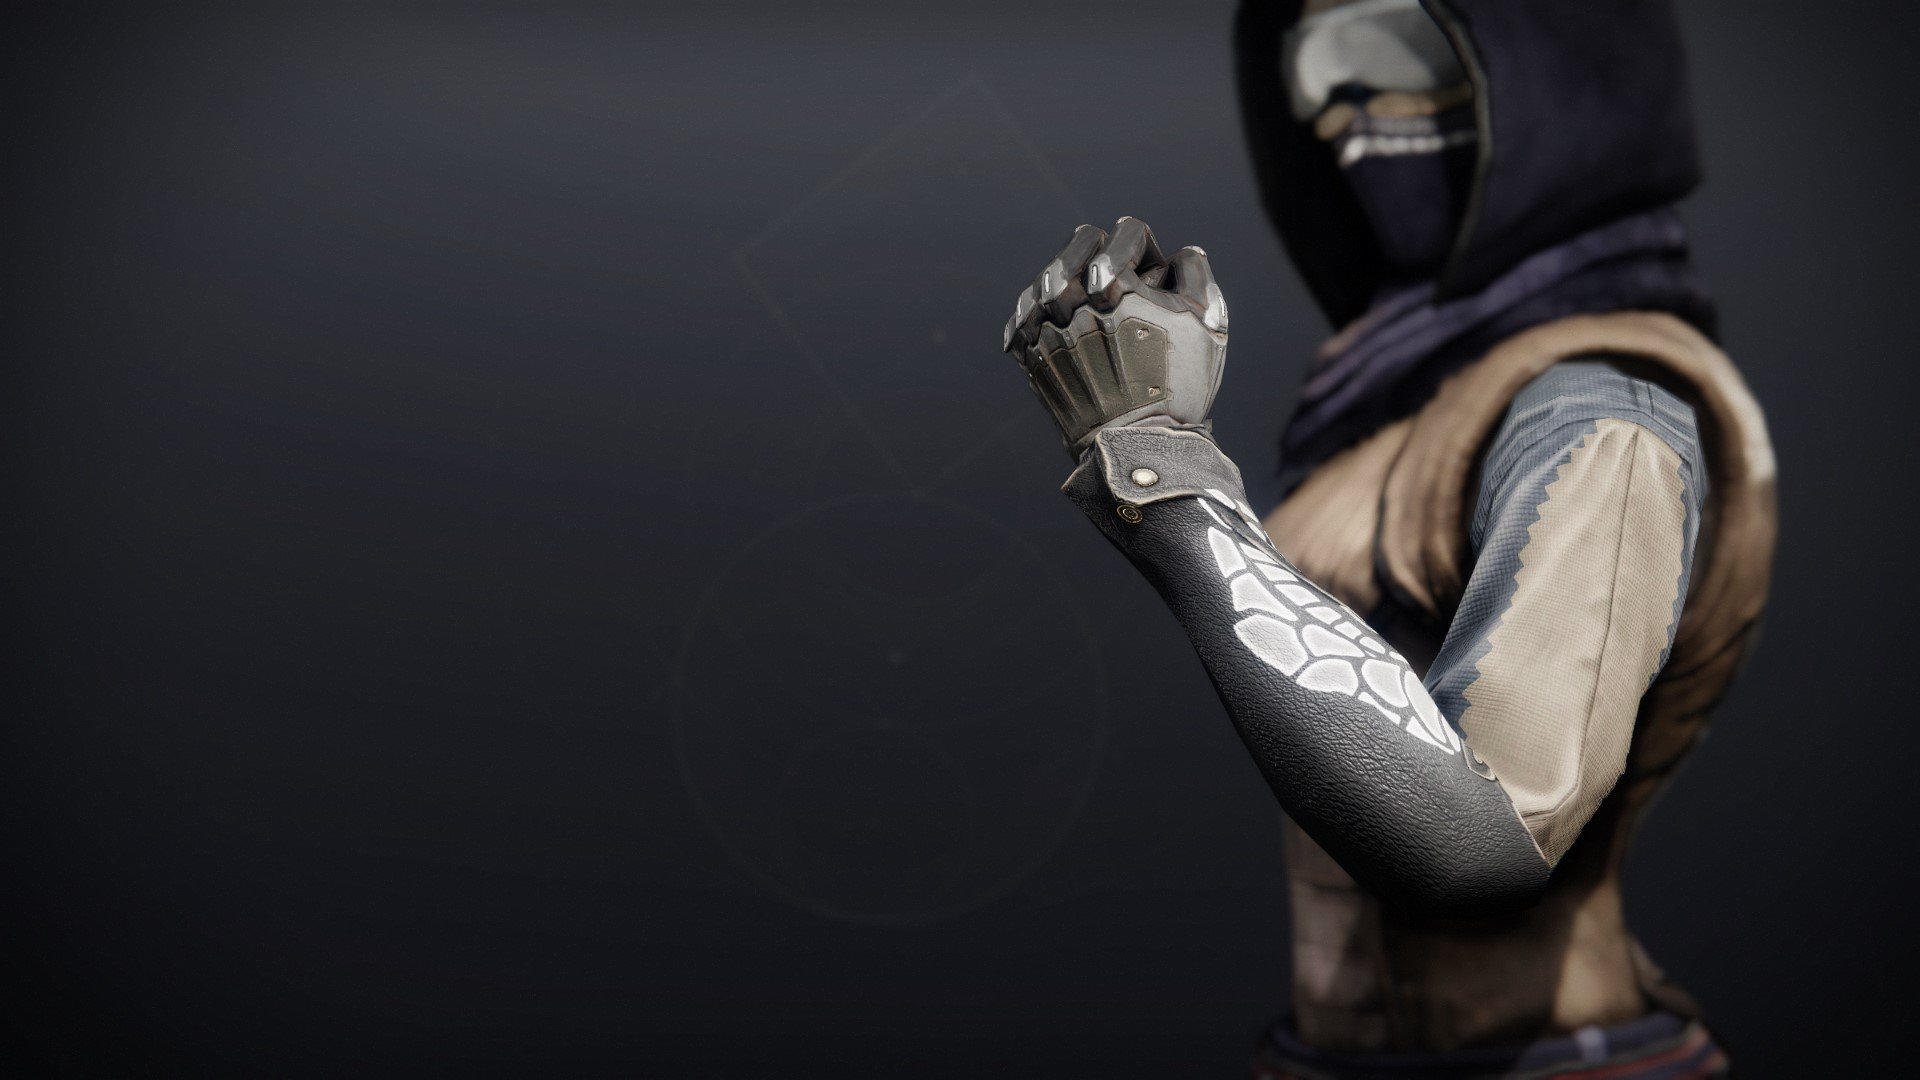 An in-game render of the Illicit Collector Grips.